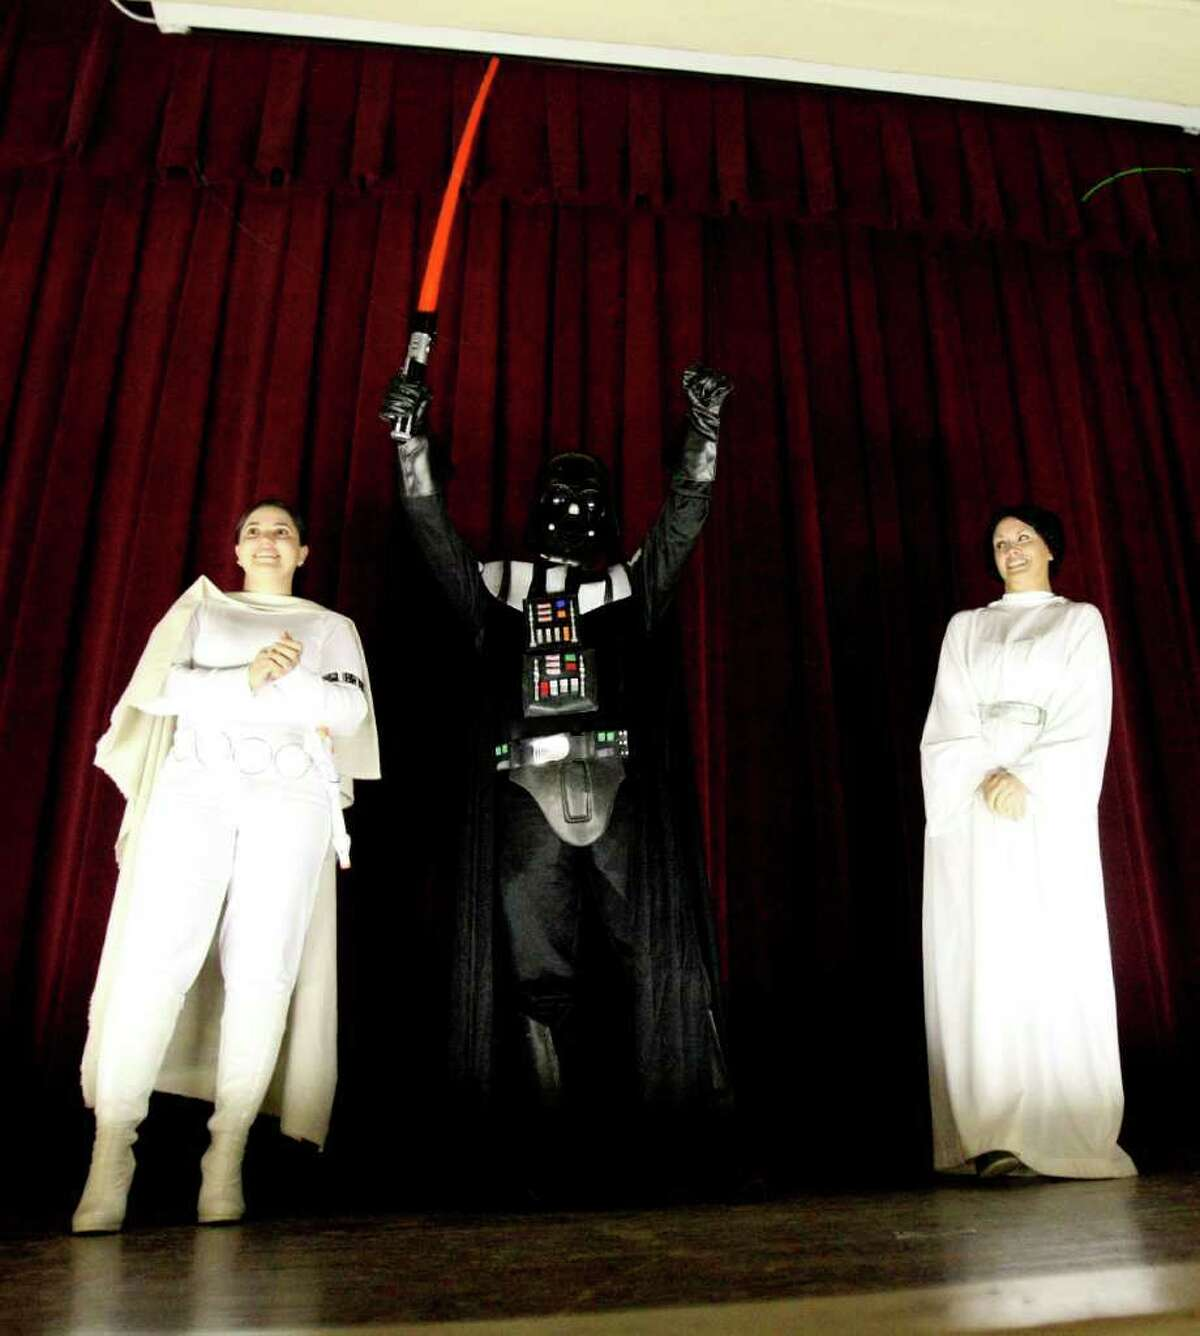 METRO: Rhodes Middle School teachers Rita Sanchez, Joshua Villarreal and Rickie Meredith dress as Star Wars characters during a STAAR Wars-themed rally on Monday March 26, 2012 to motivate students for the STAAR test this week.